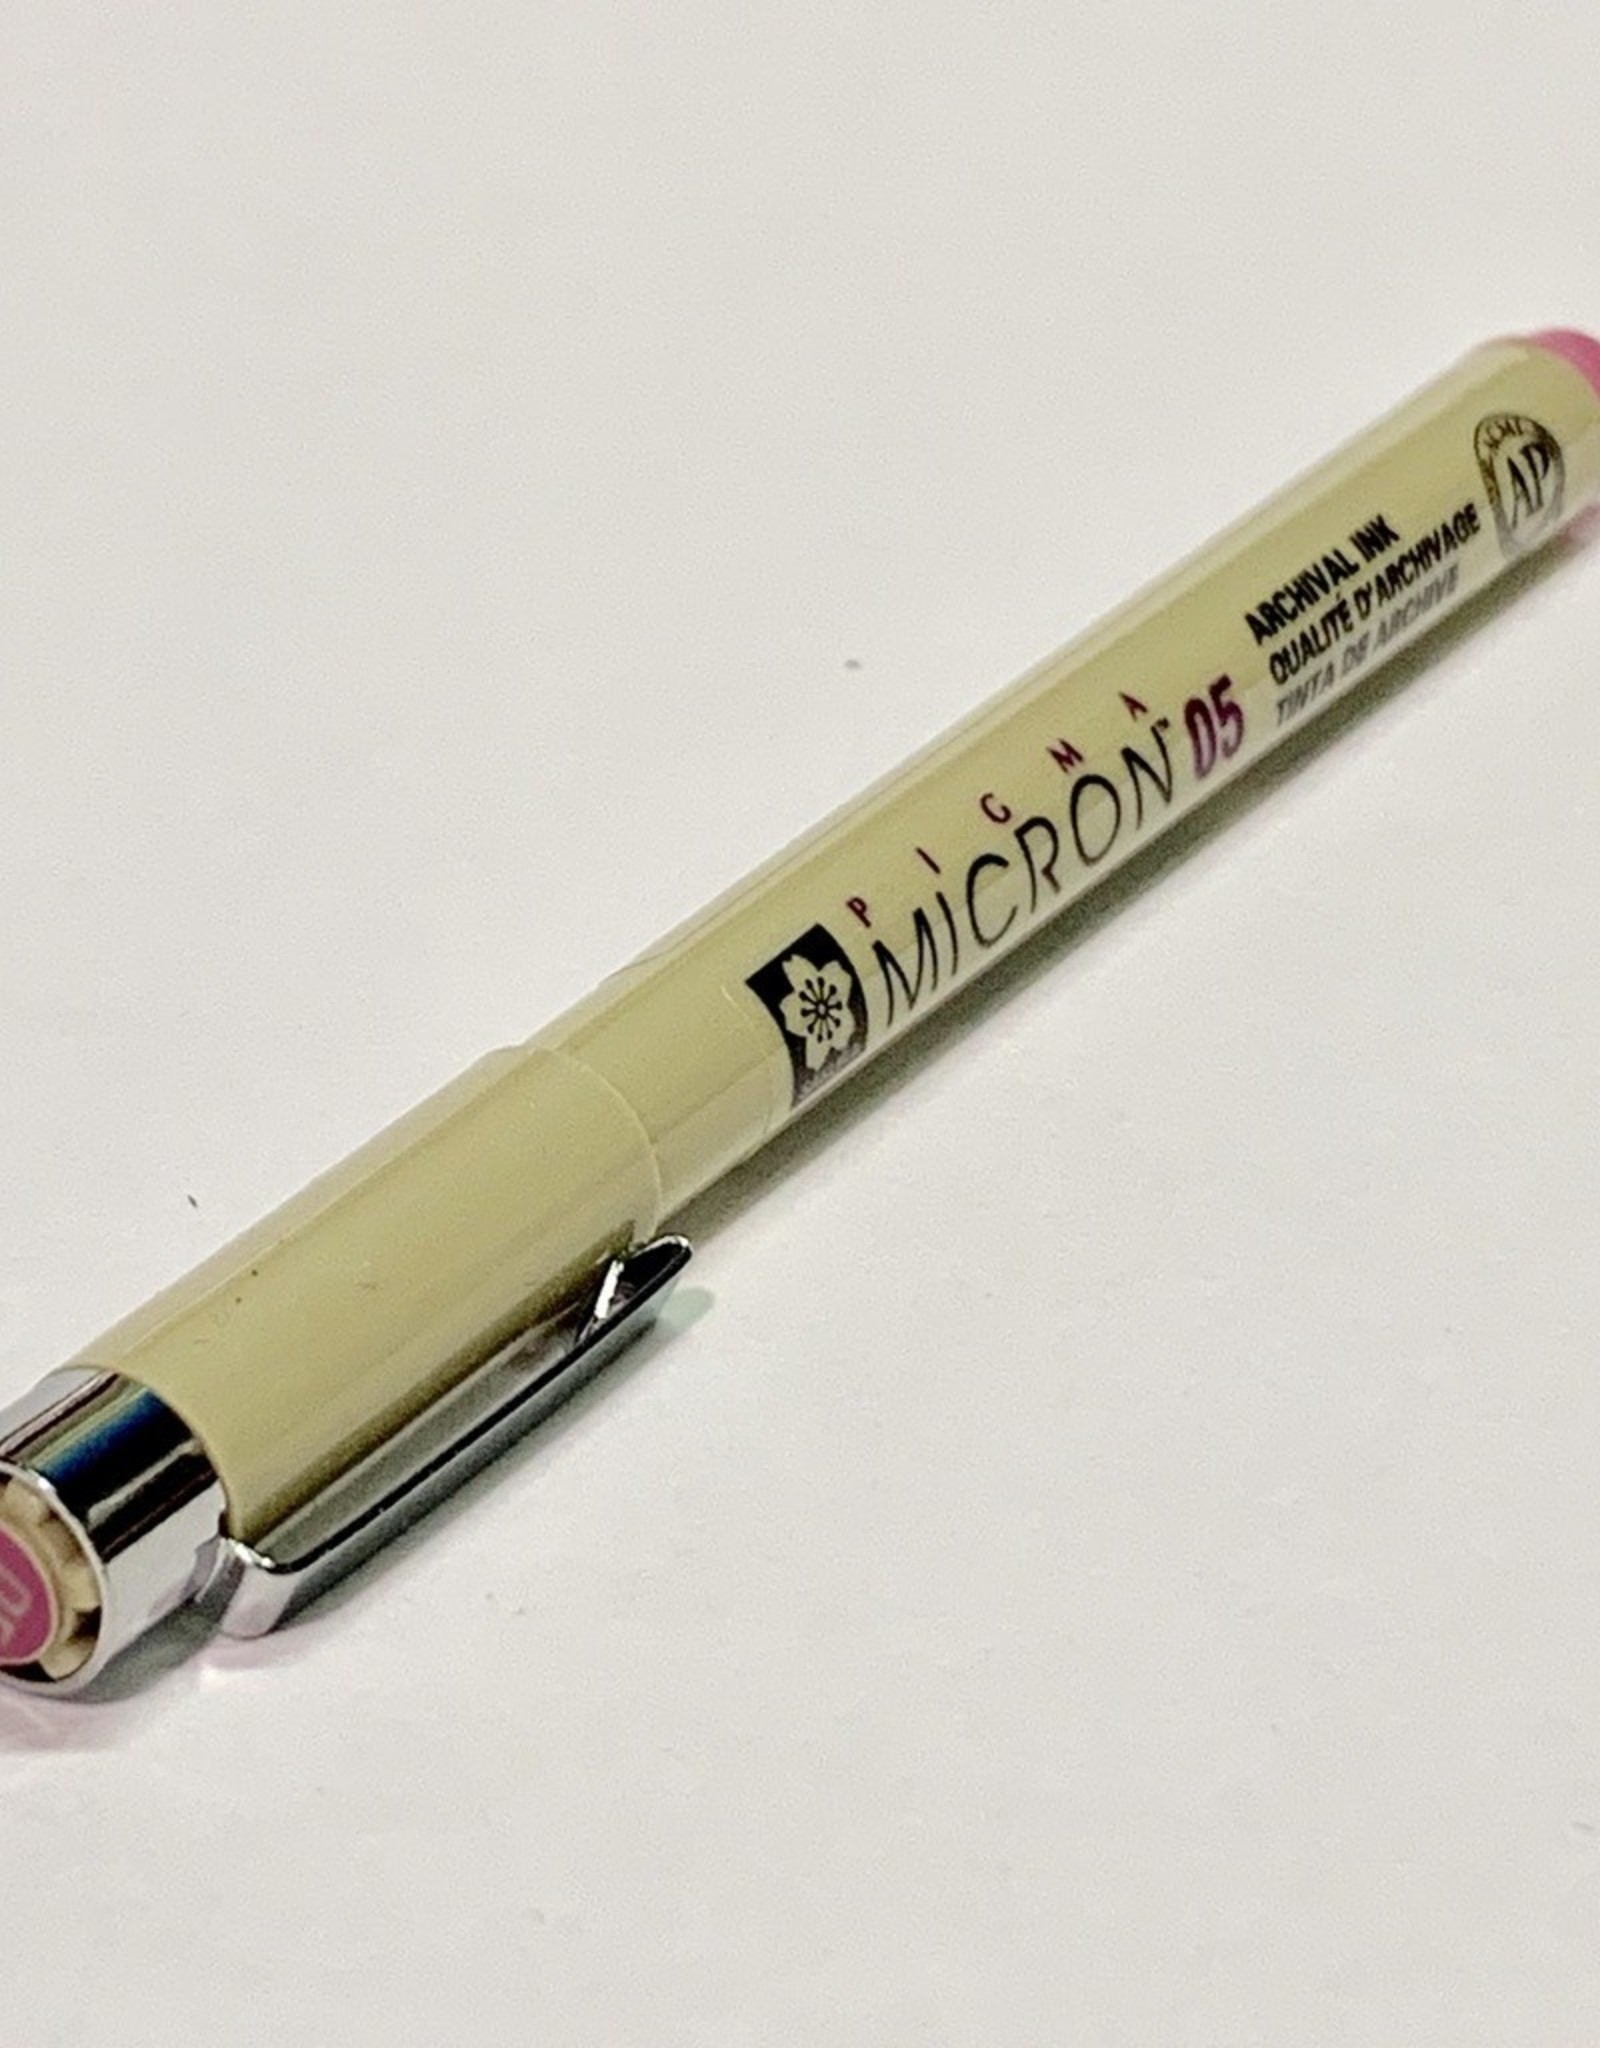 Micron Rose Pen 05 .45mm